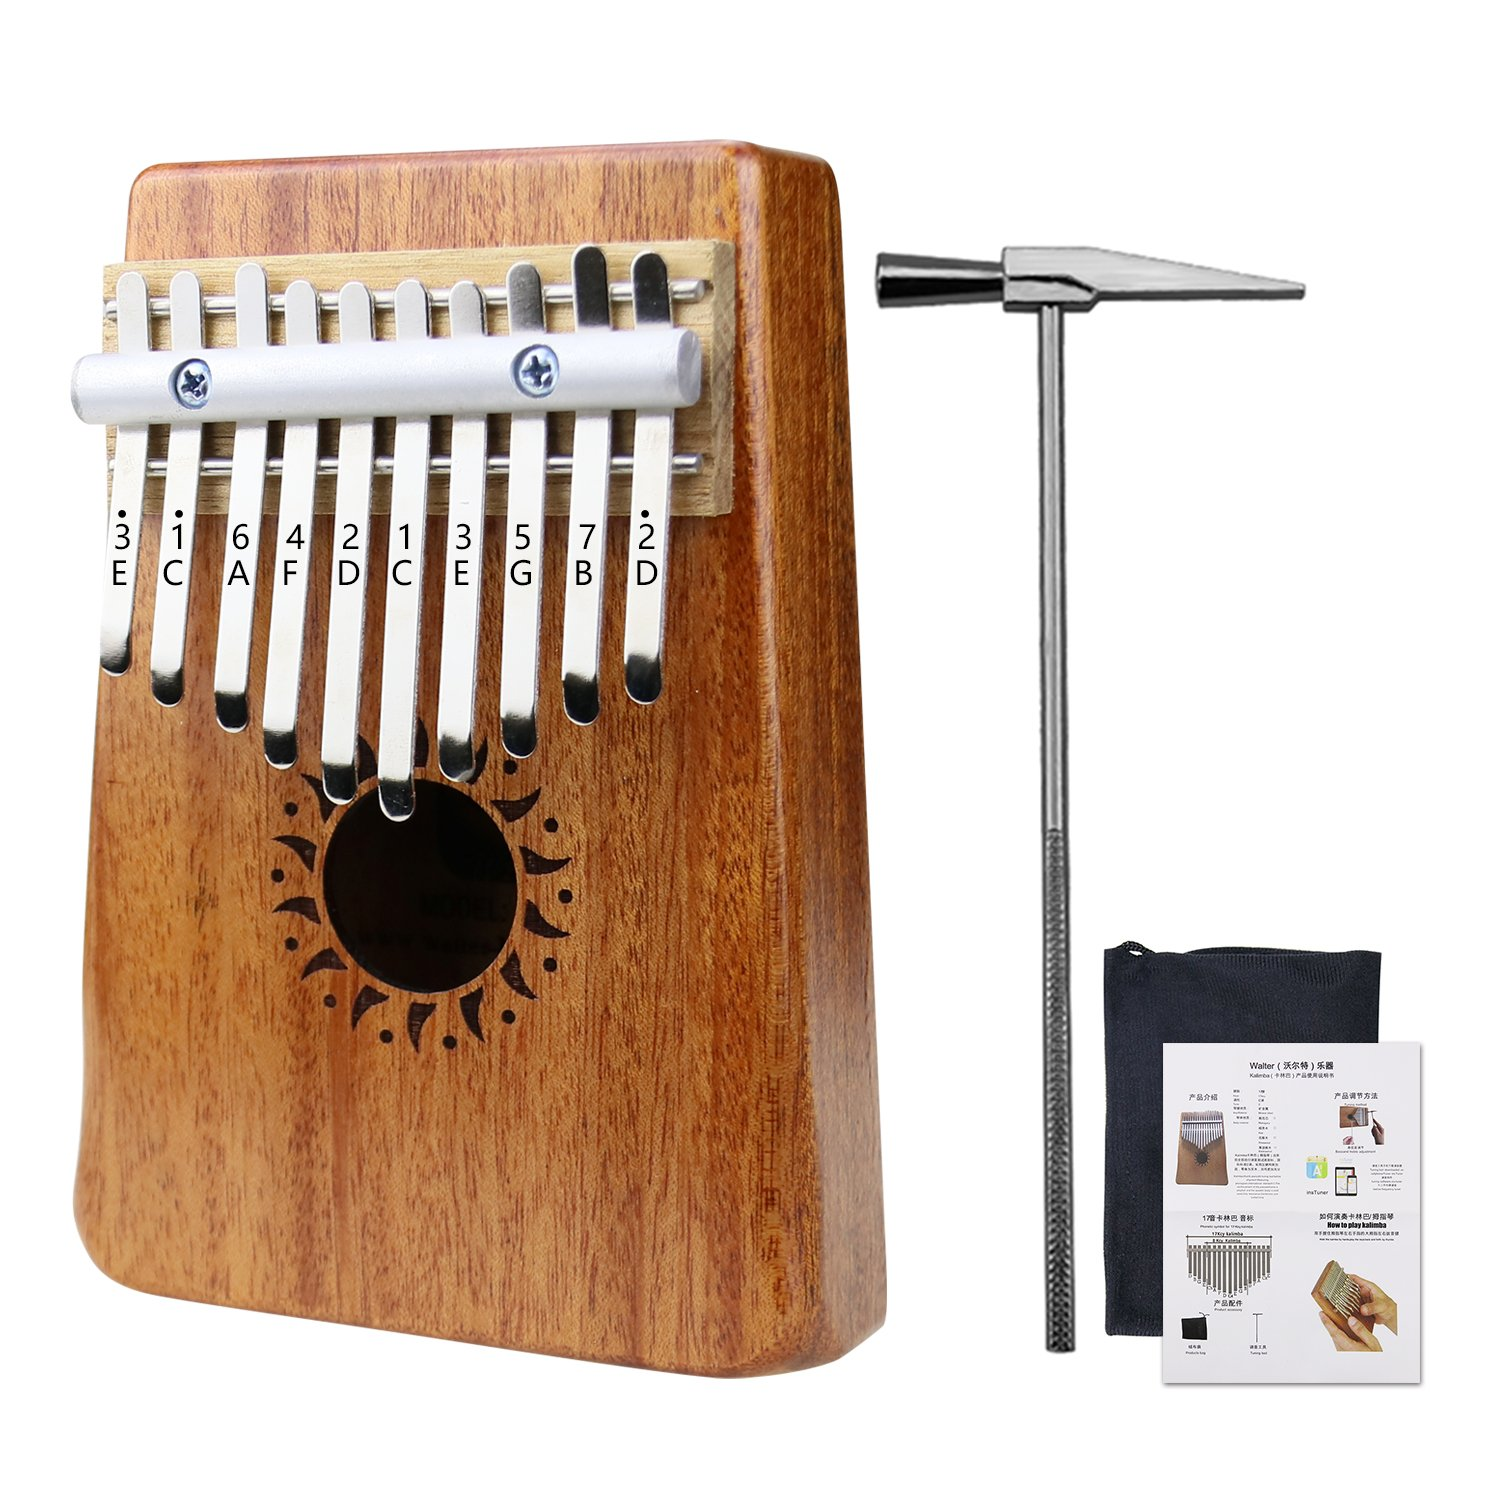 Rahano Kalimba 10 Keys Thumb Piano, Solid Mahogany Body African Instrument with Tune Hammer, Bag and Music Book